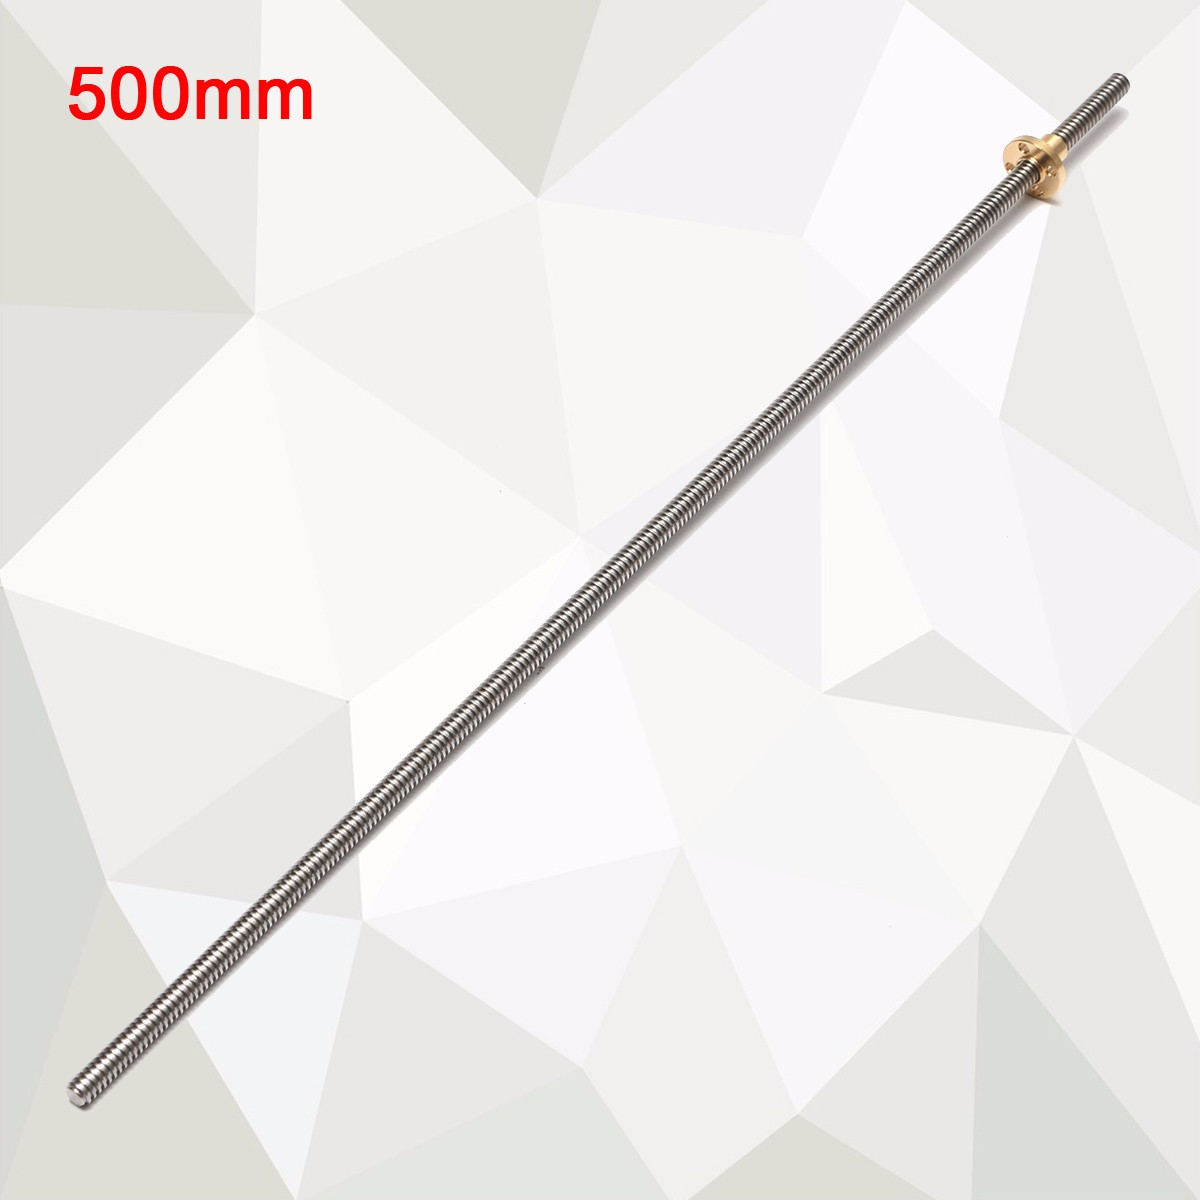 8mm 300/400/500/600mm Lead 2mm Stainless Steel Lead Screw + T8 Nut For CNC 3D Printer Reprap